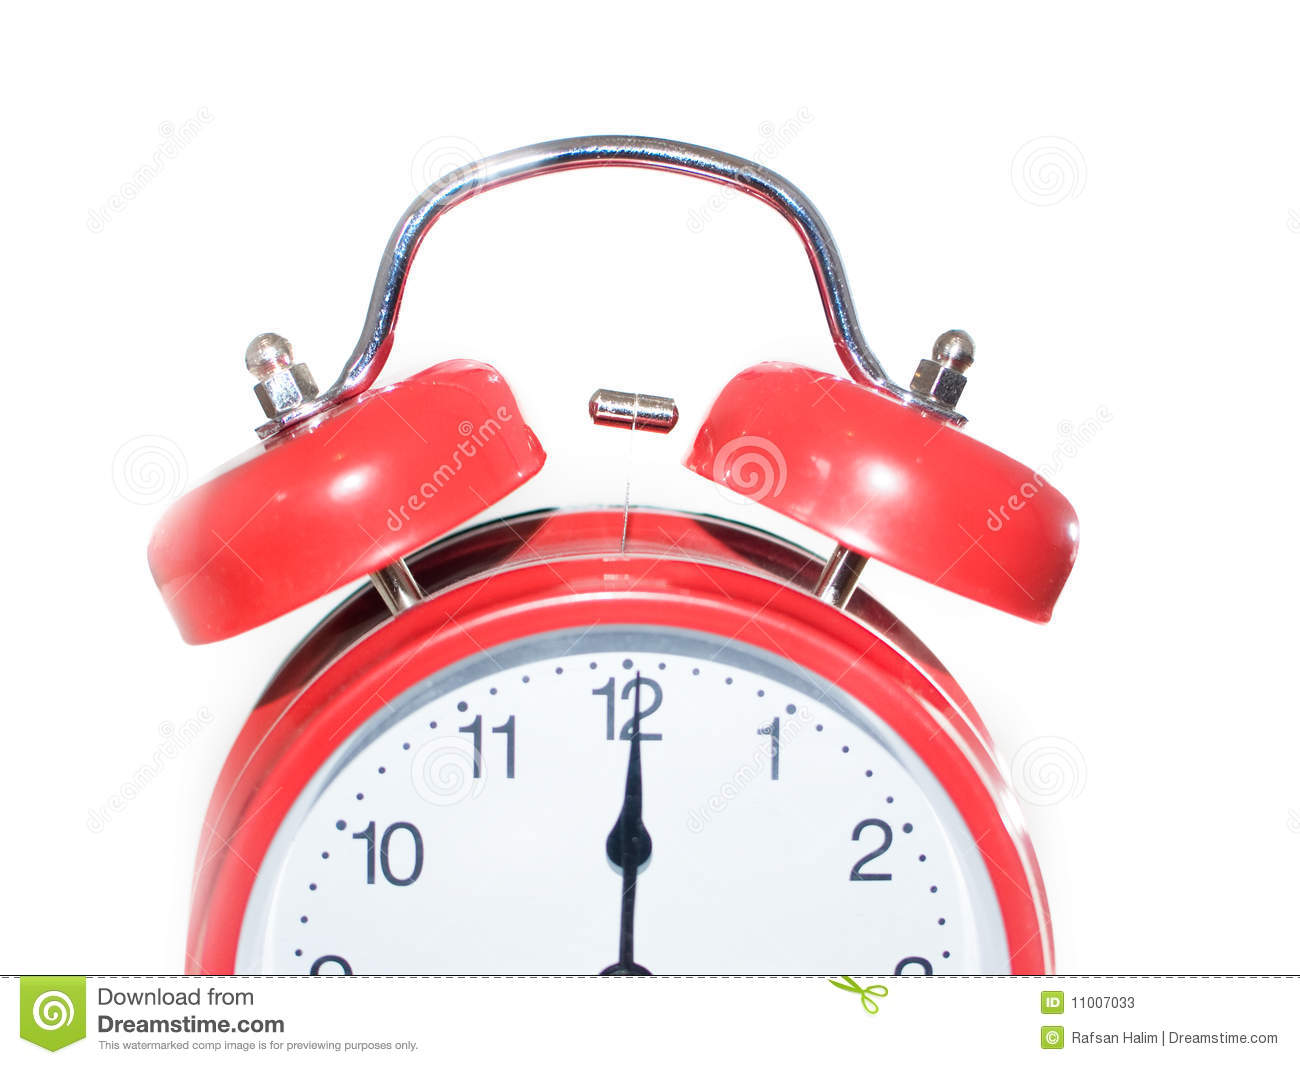 Red Clock At Midnight/midday Stock Photos - Image: 11007033